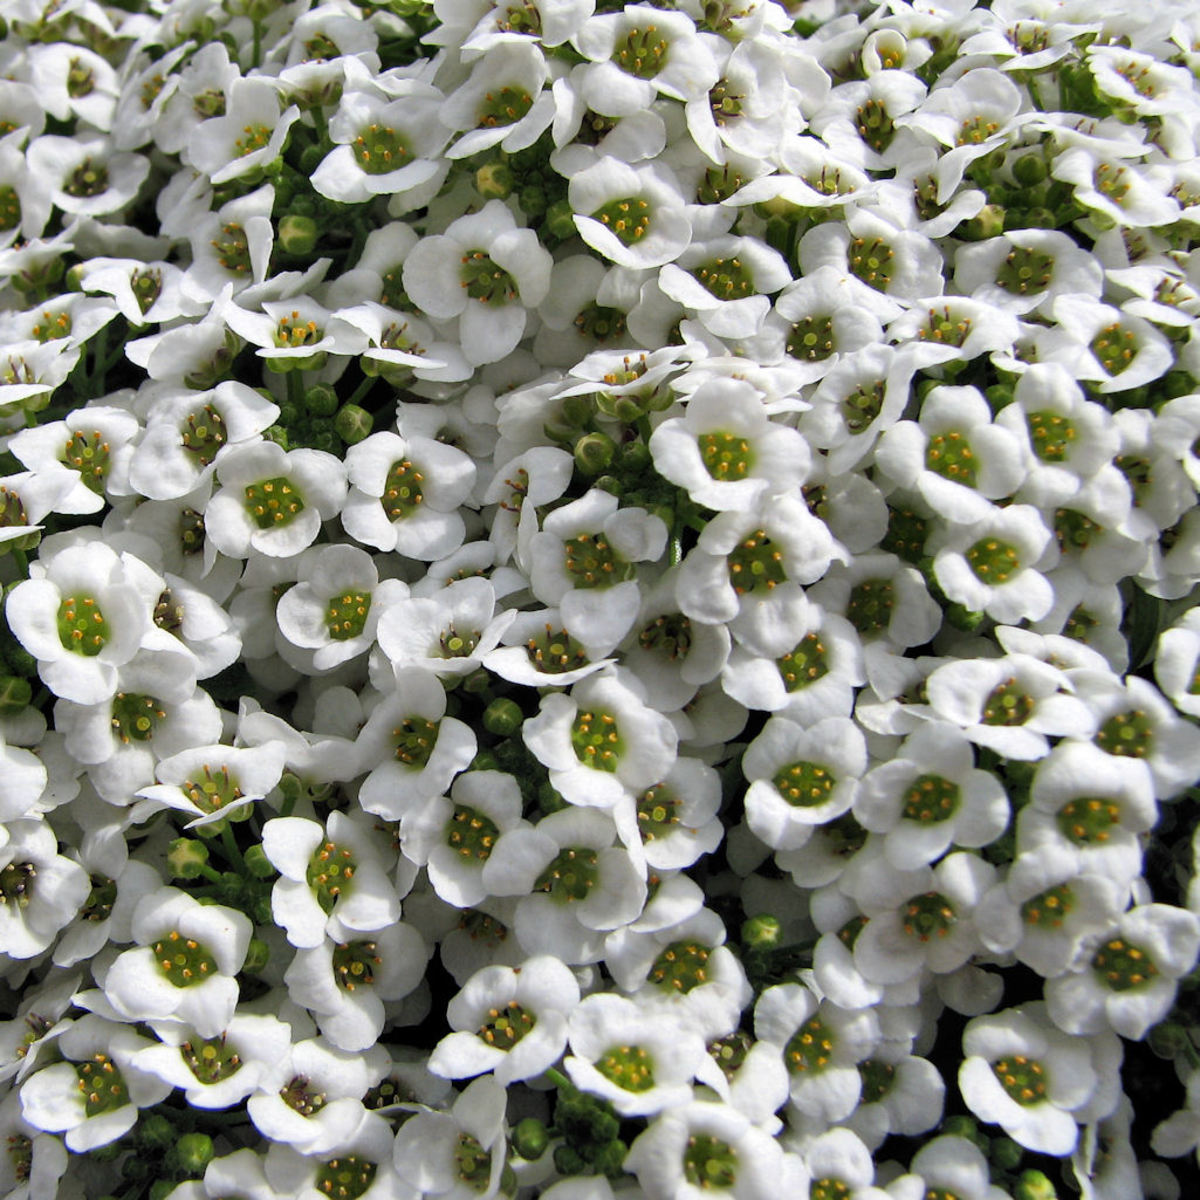 These alyssium have such a wonderful scent!